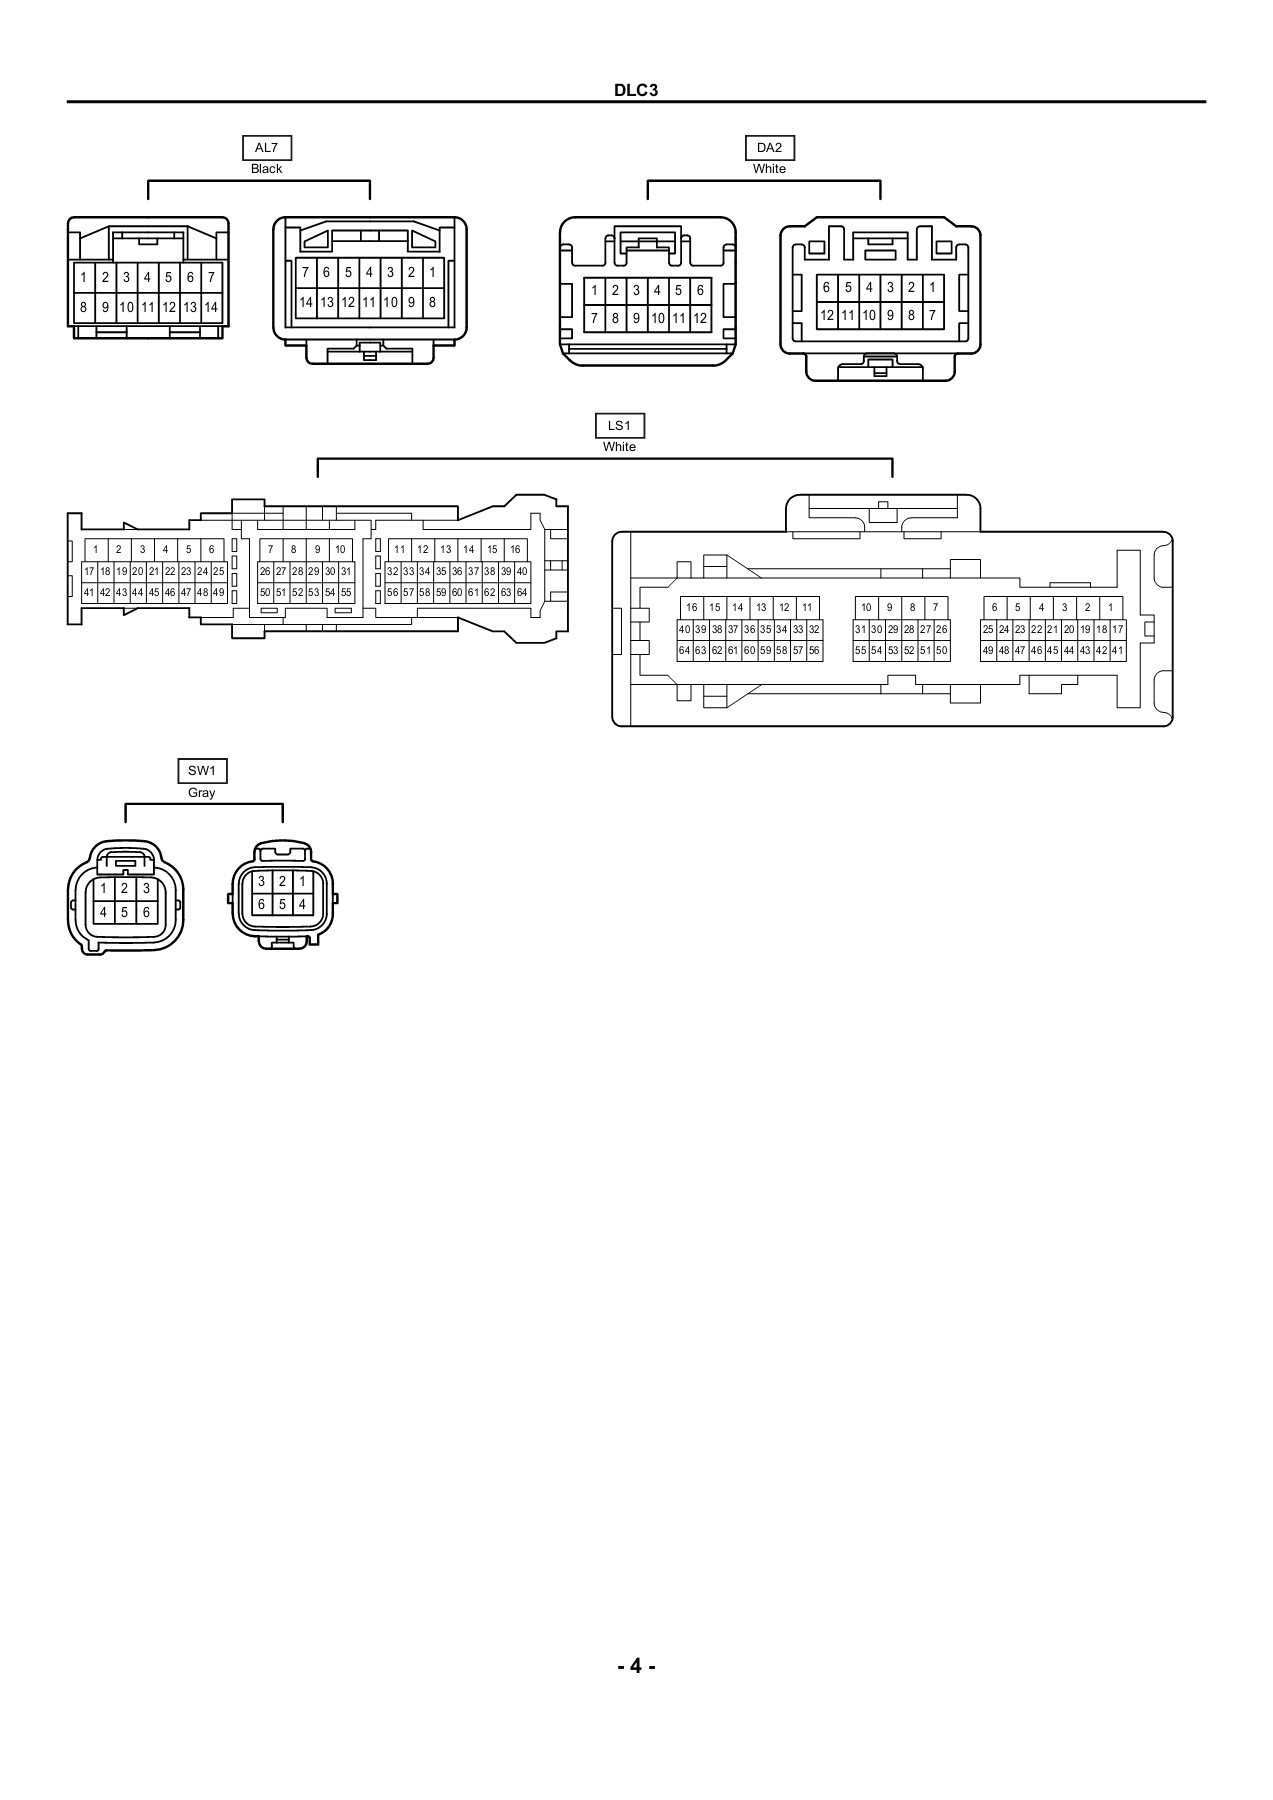 toyota prius 2010 electrical wiring diagrams pages 151 200 text toyota prius 2010 electrical wiring diagrams [ 1273 x 1800 Pixel ]